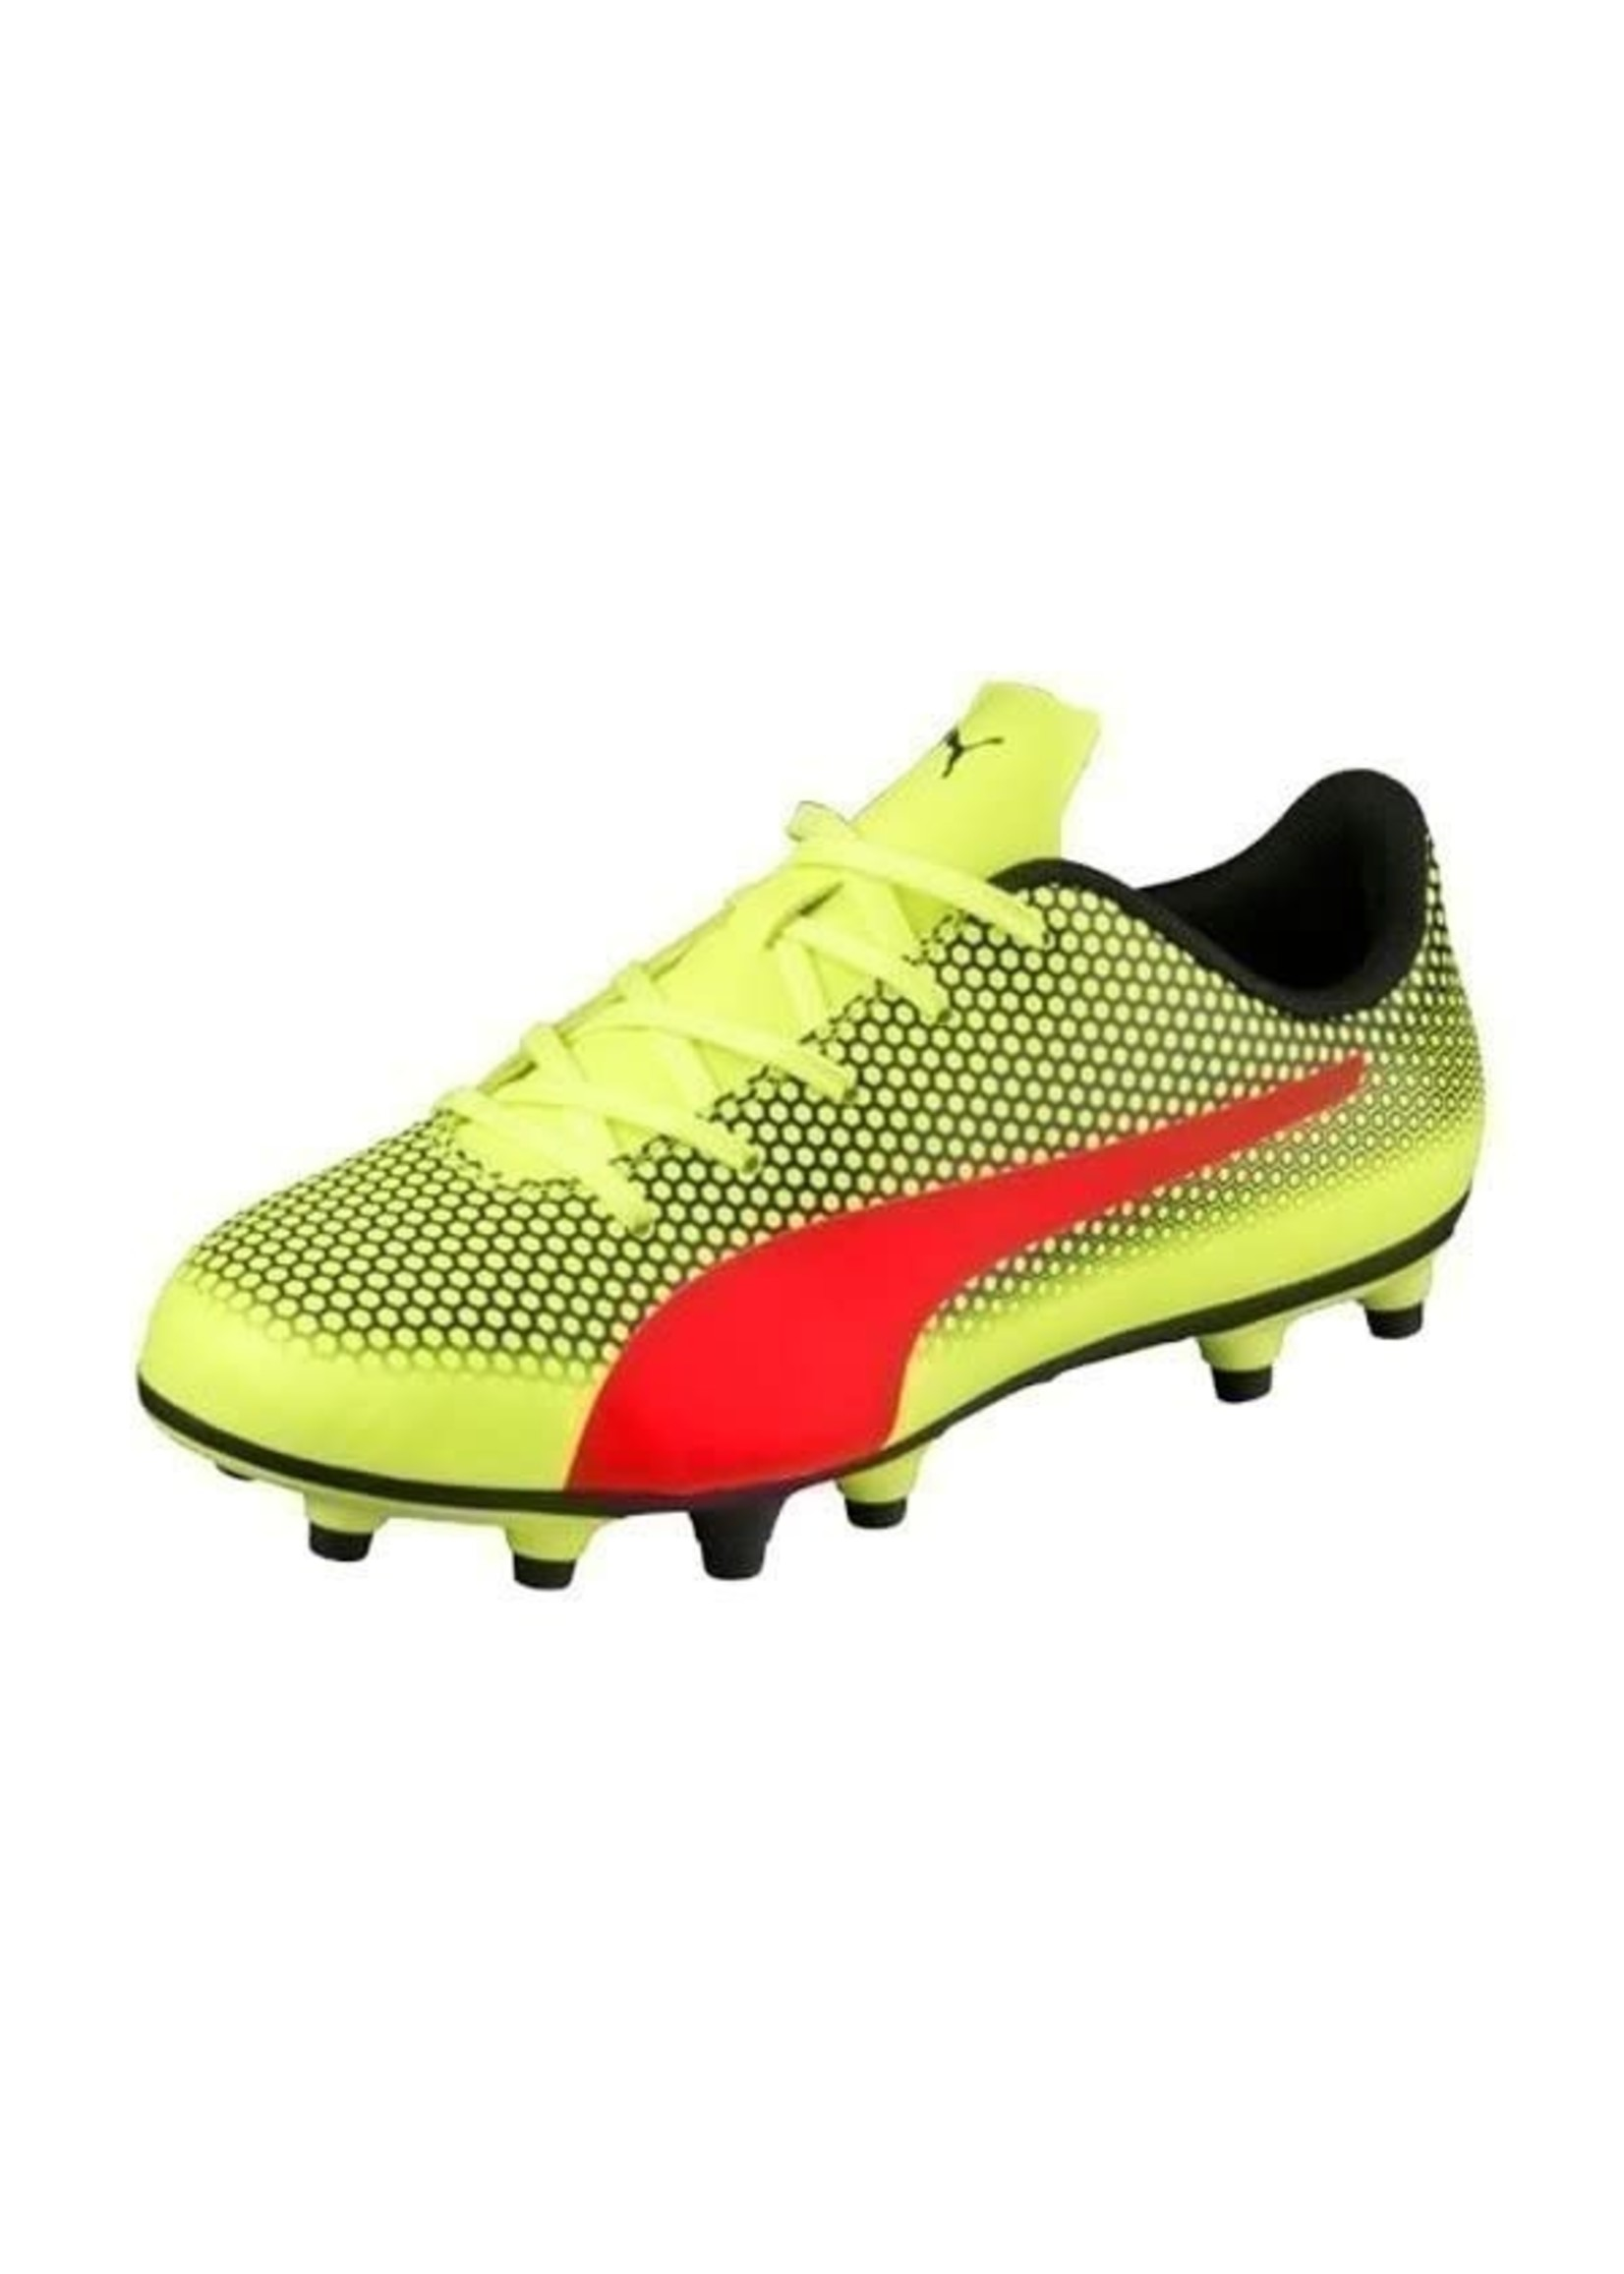 Puma Spirit FG Jr - Yellow/Red